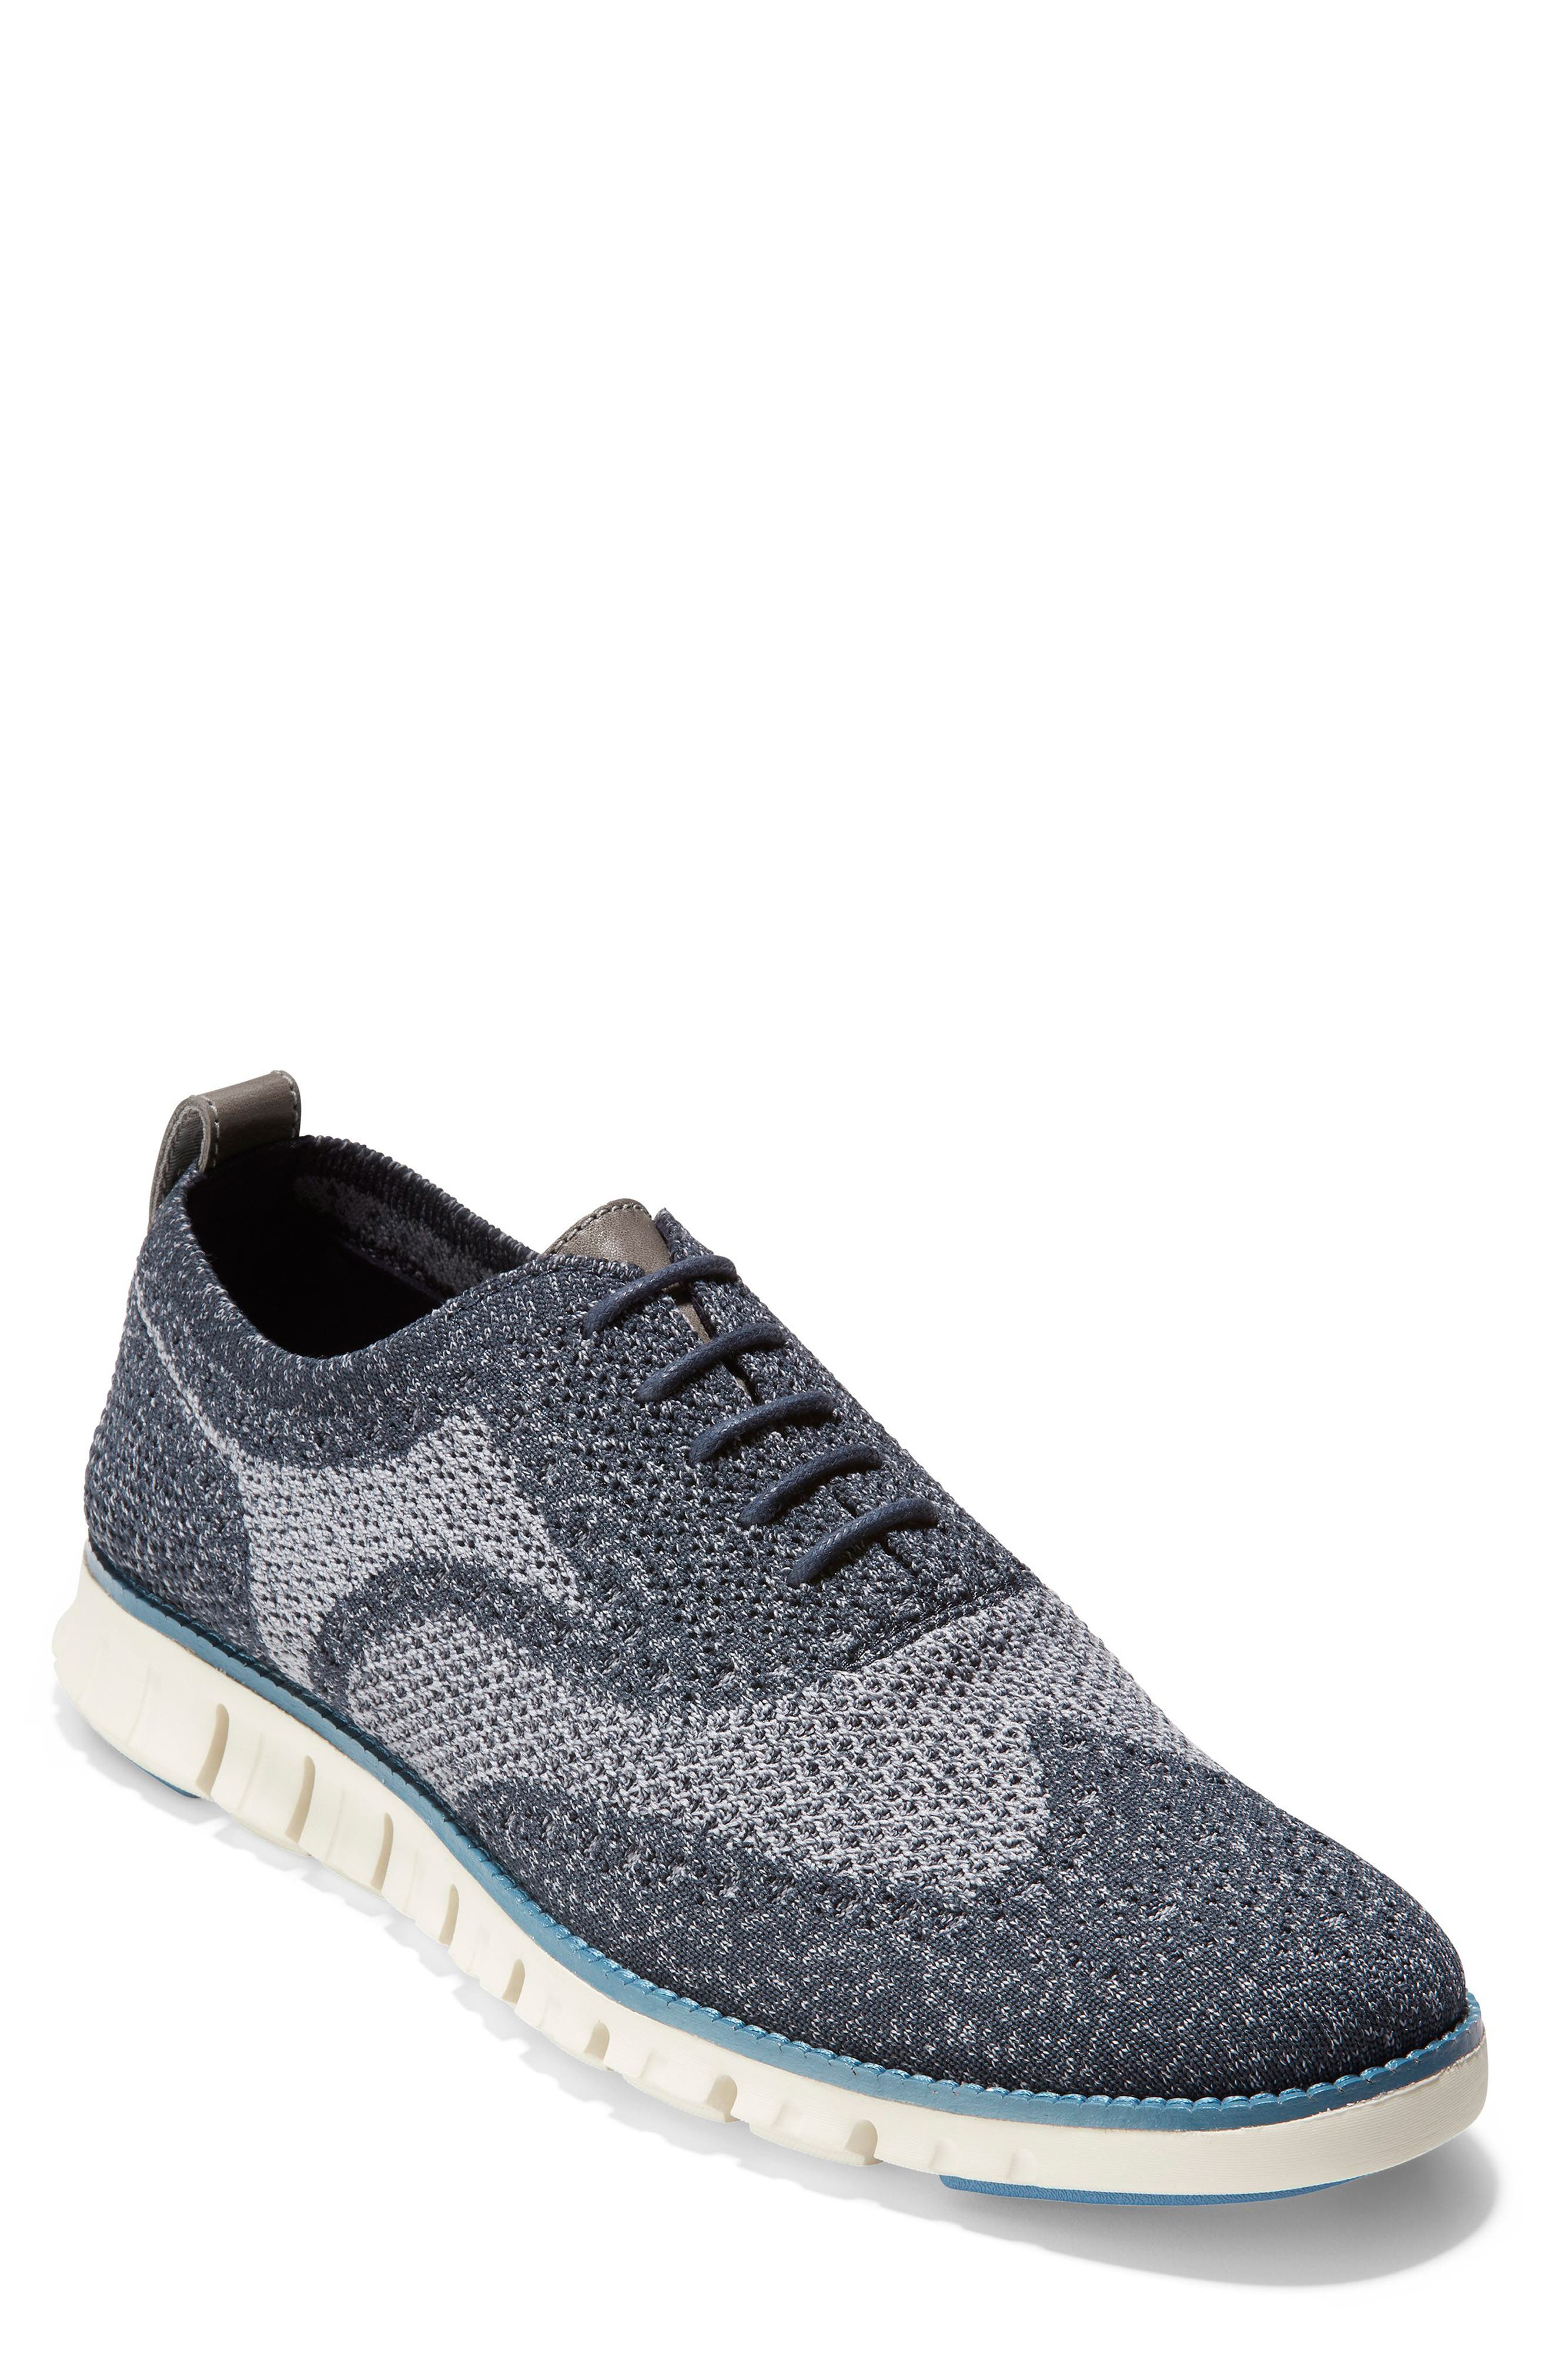 ZeroGrand Stitchlite Woven Wool Wingtip,                         Main,                         color, BLUEBERRY KNIT